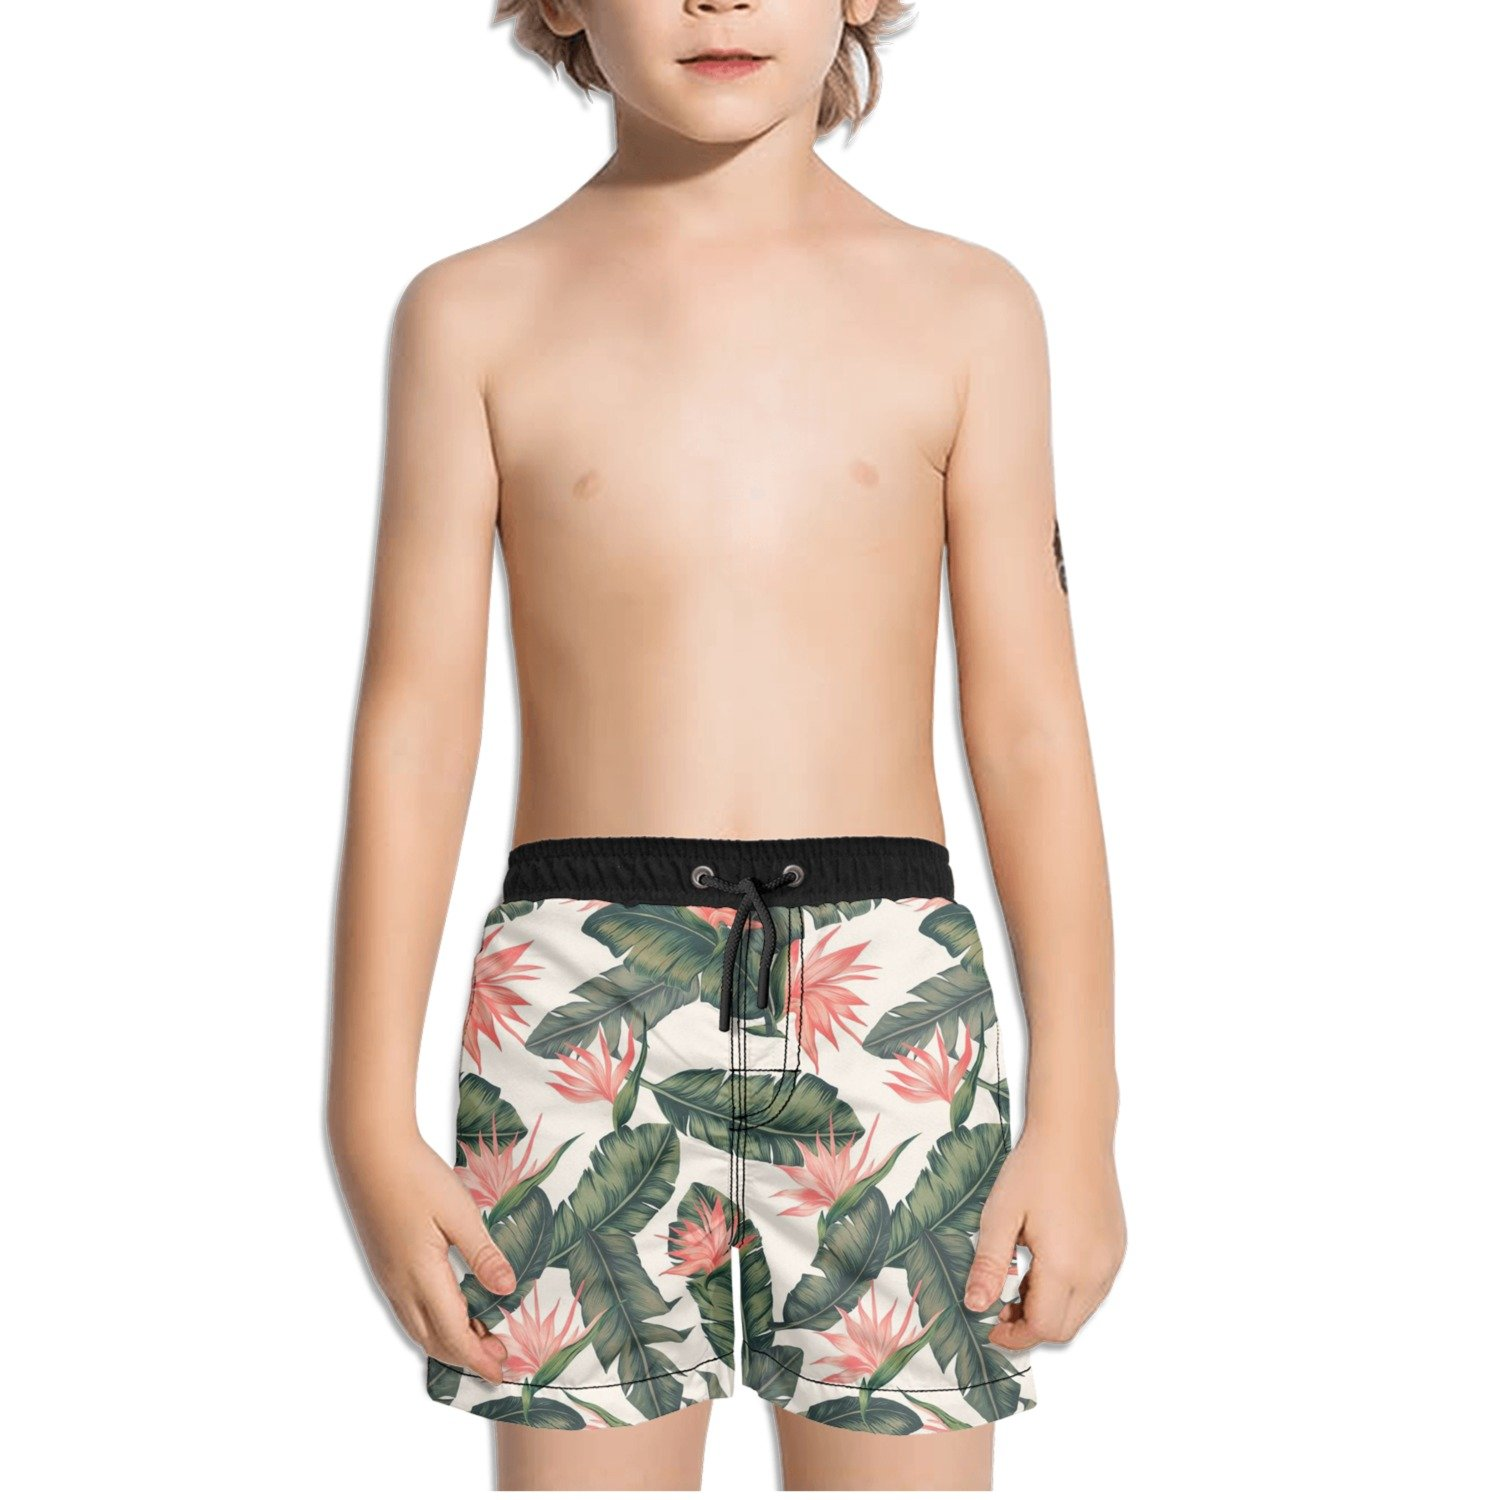 FullBo Tropical Bird of Paradise Little Boy's Short Swim Trunks Quick Dry Beach Shorts